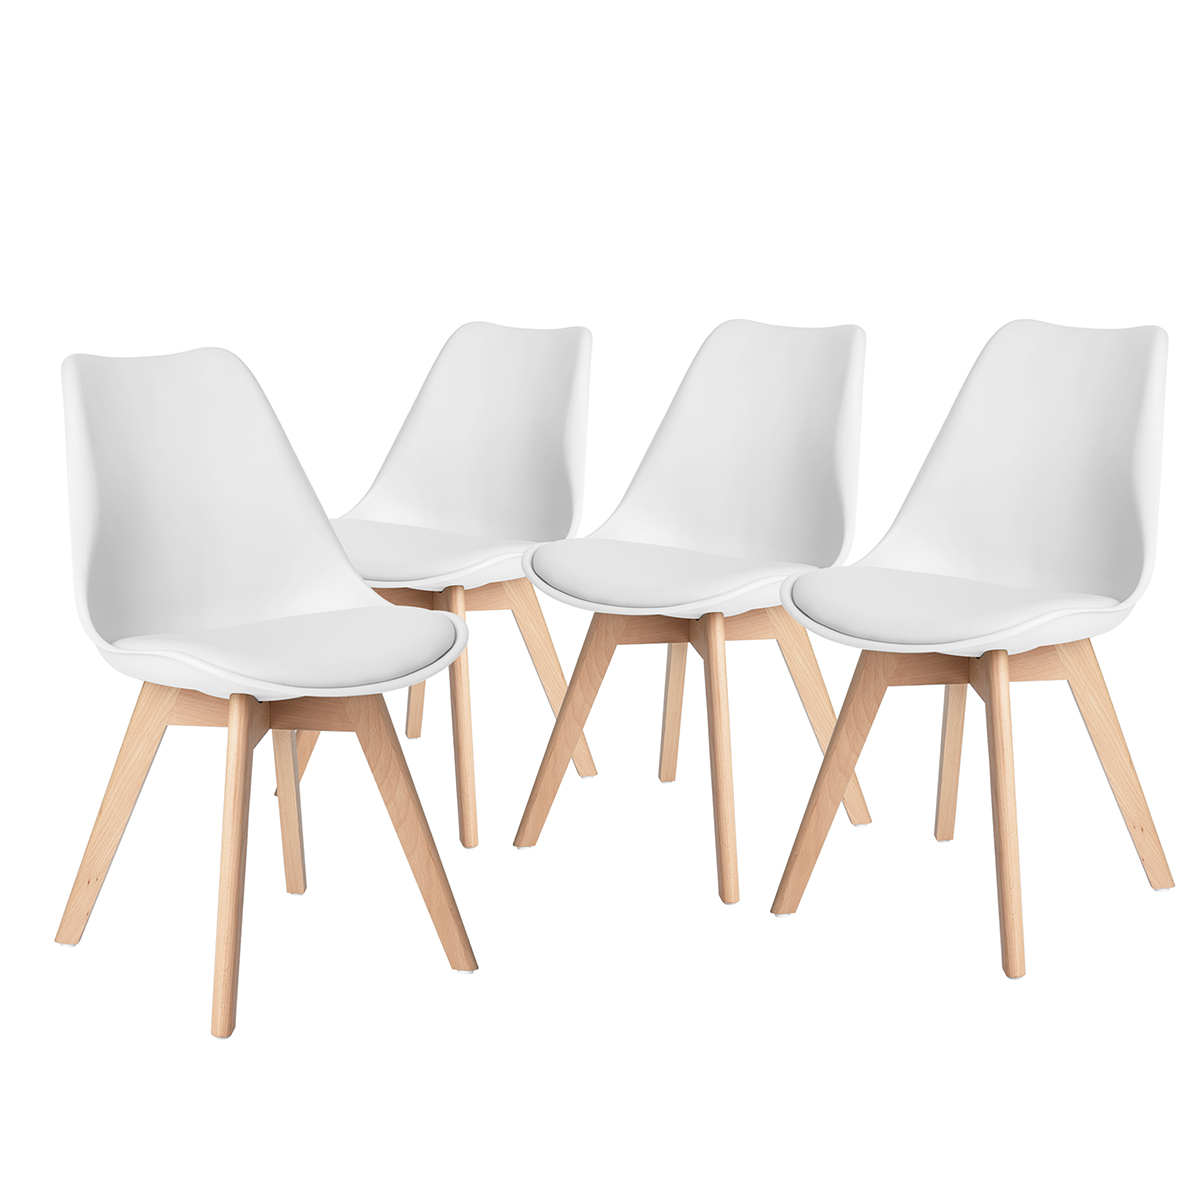 Set Of 4 Eames Style Soft Padded Seat Dining Shell Chairs Solid Wooden Leg